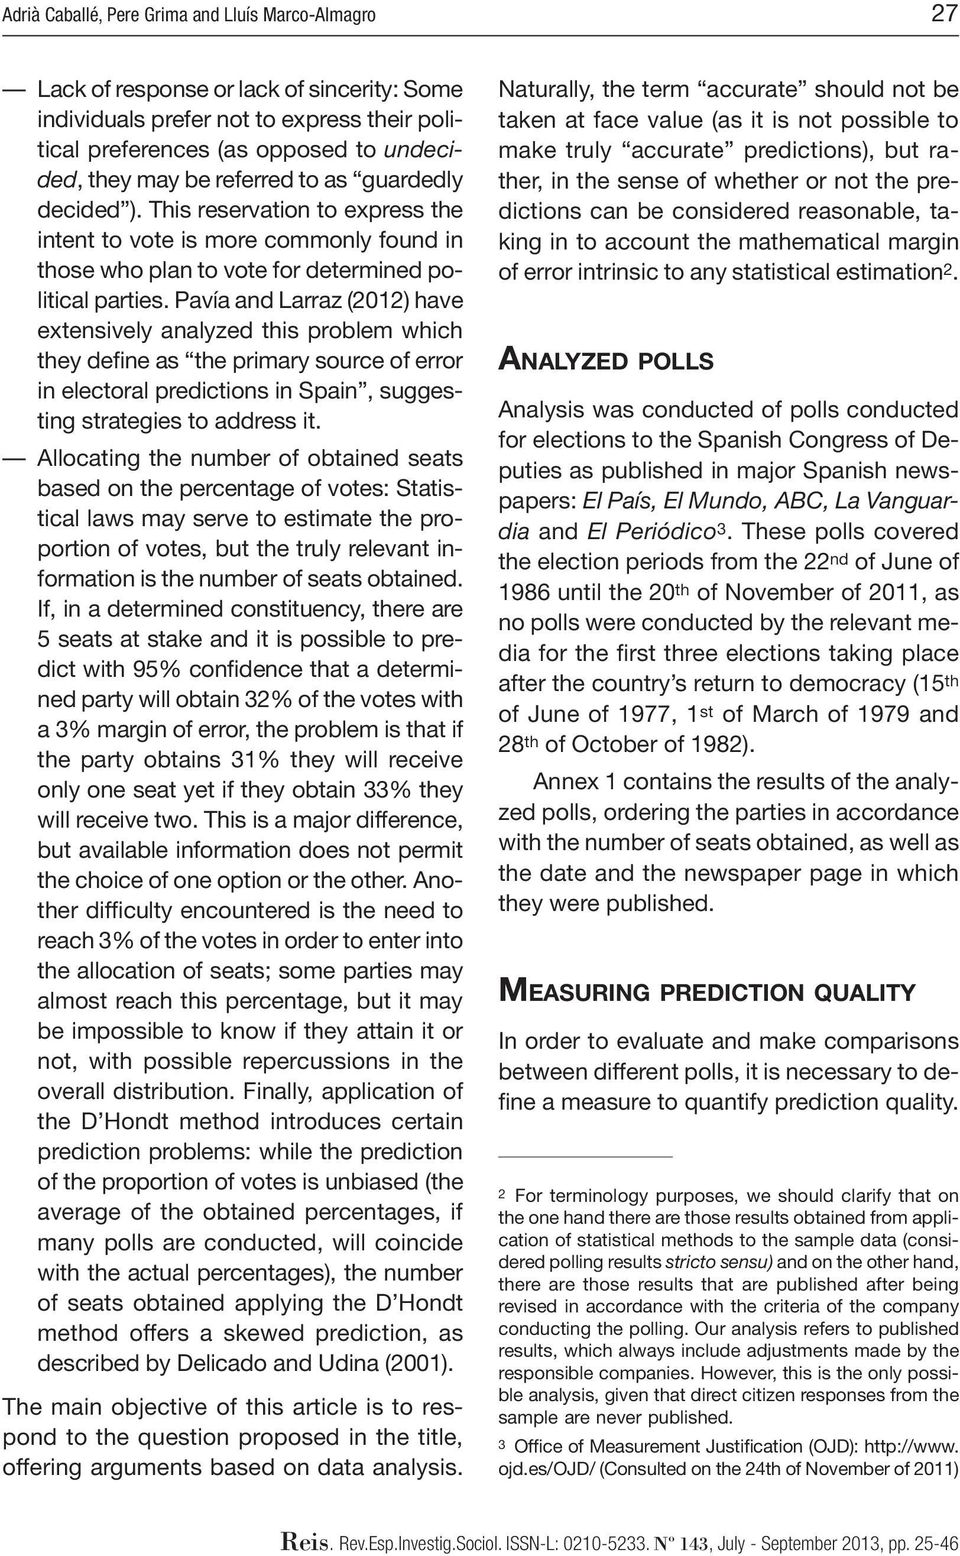 Pavía and Larraz (2012) have extensively analyzed this problem which they define as the primary source of error in electoral predictions in Spain, suggesting strategies to address it.